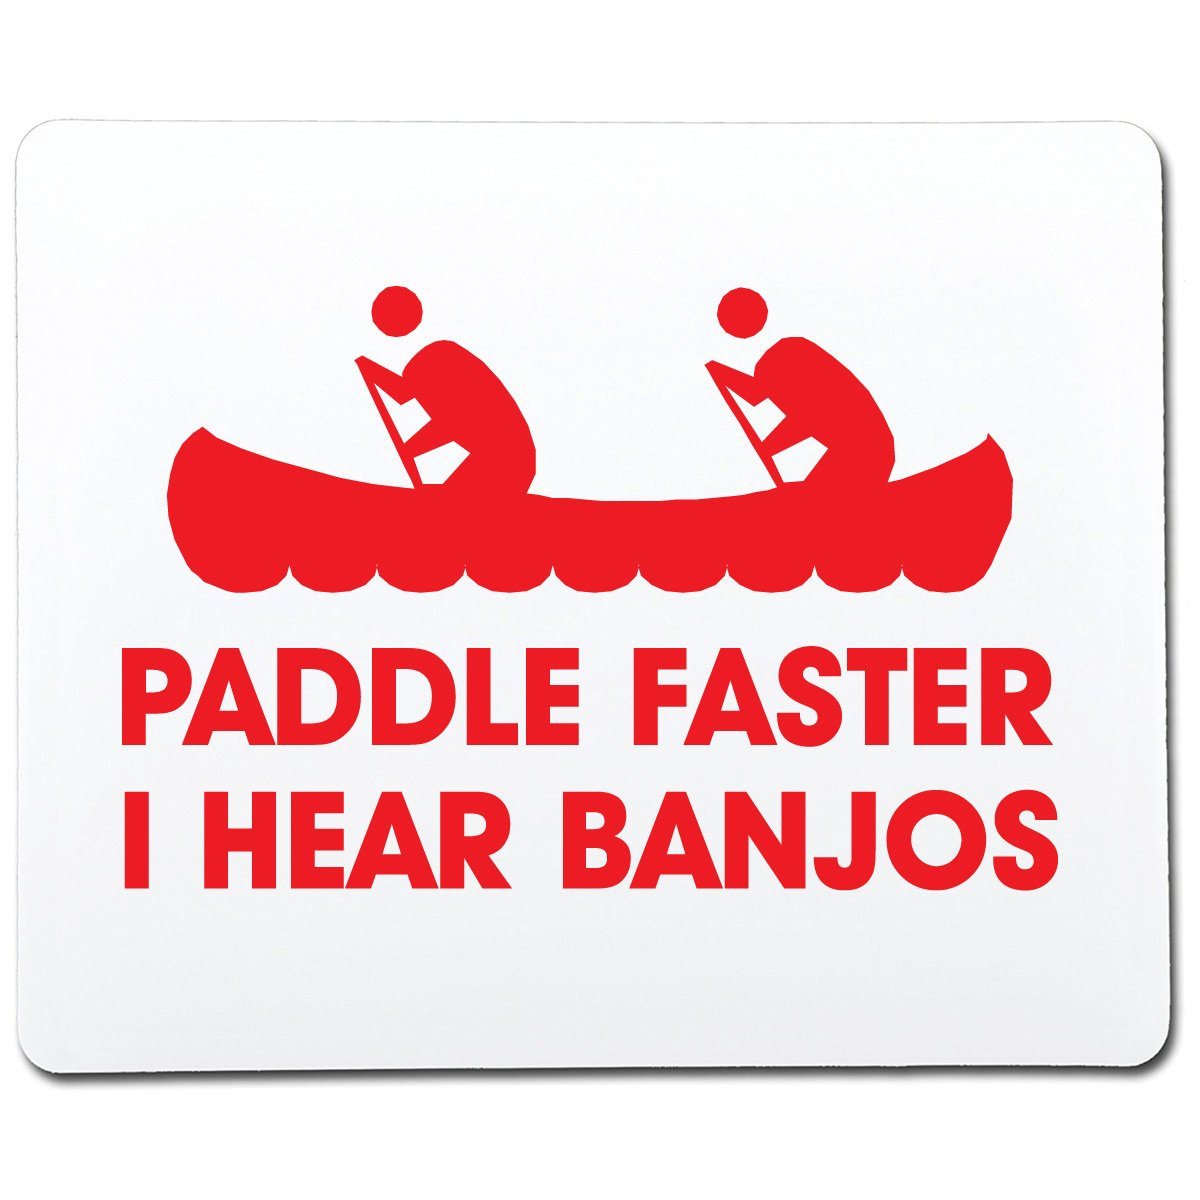 Feelin Good Tees Paddle Faster I Hear Banjos Funny Gag Gift Co-Worker Gift Novelty